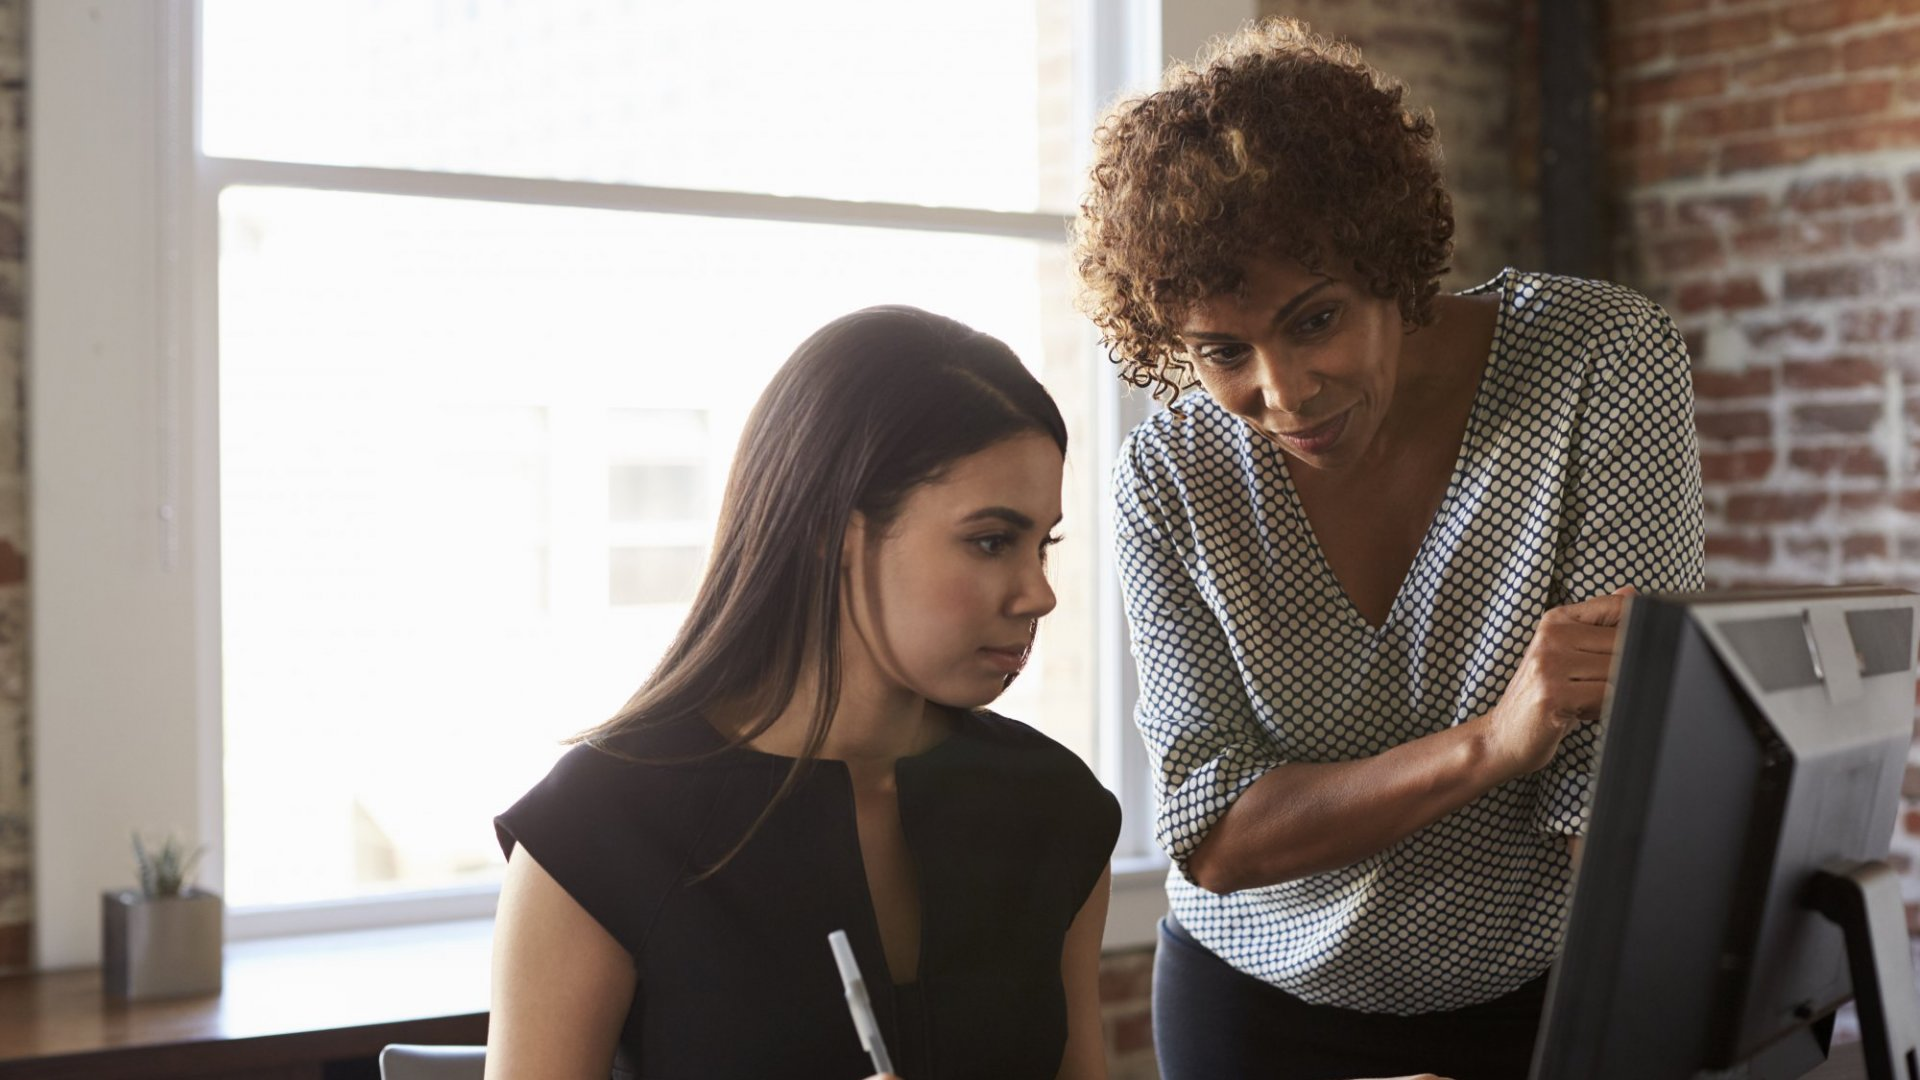 Want to Be Respected for Your Work Ethic? Do This 1 Thing in the Job Interview